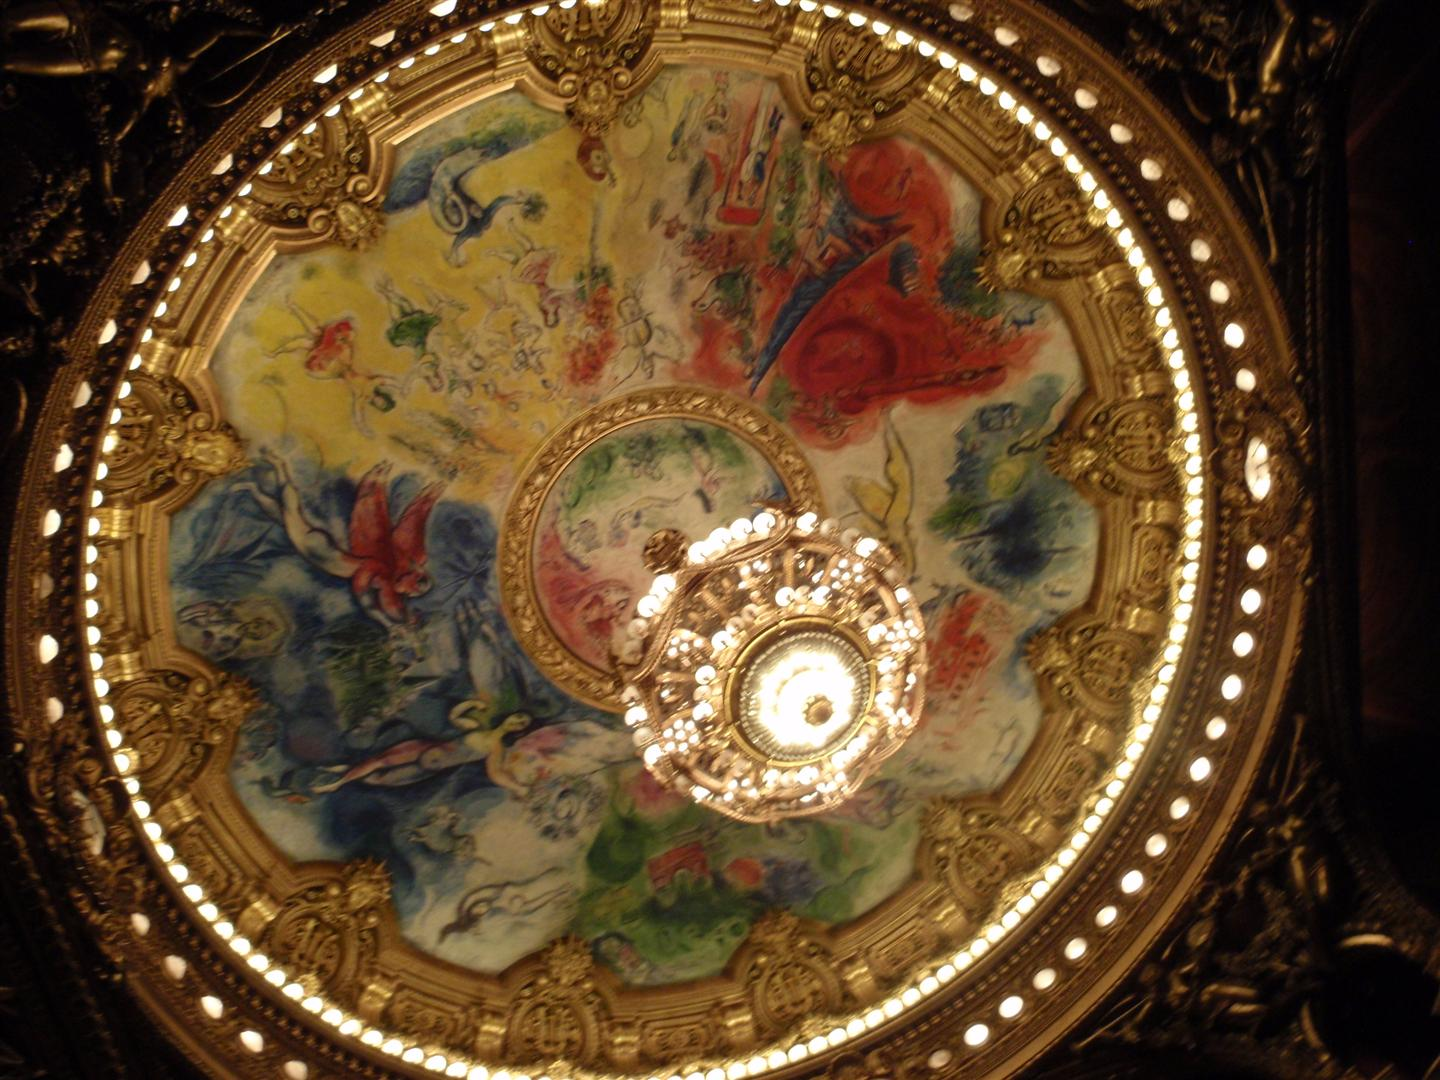 Chagall's painted ceiling